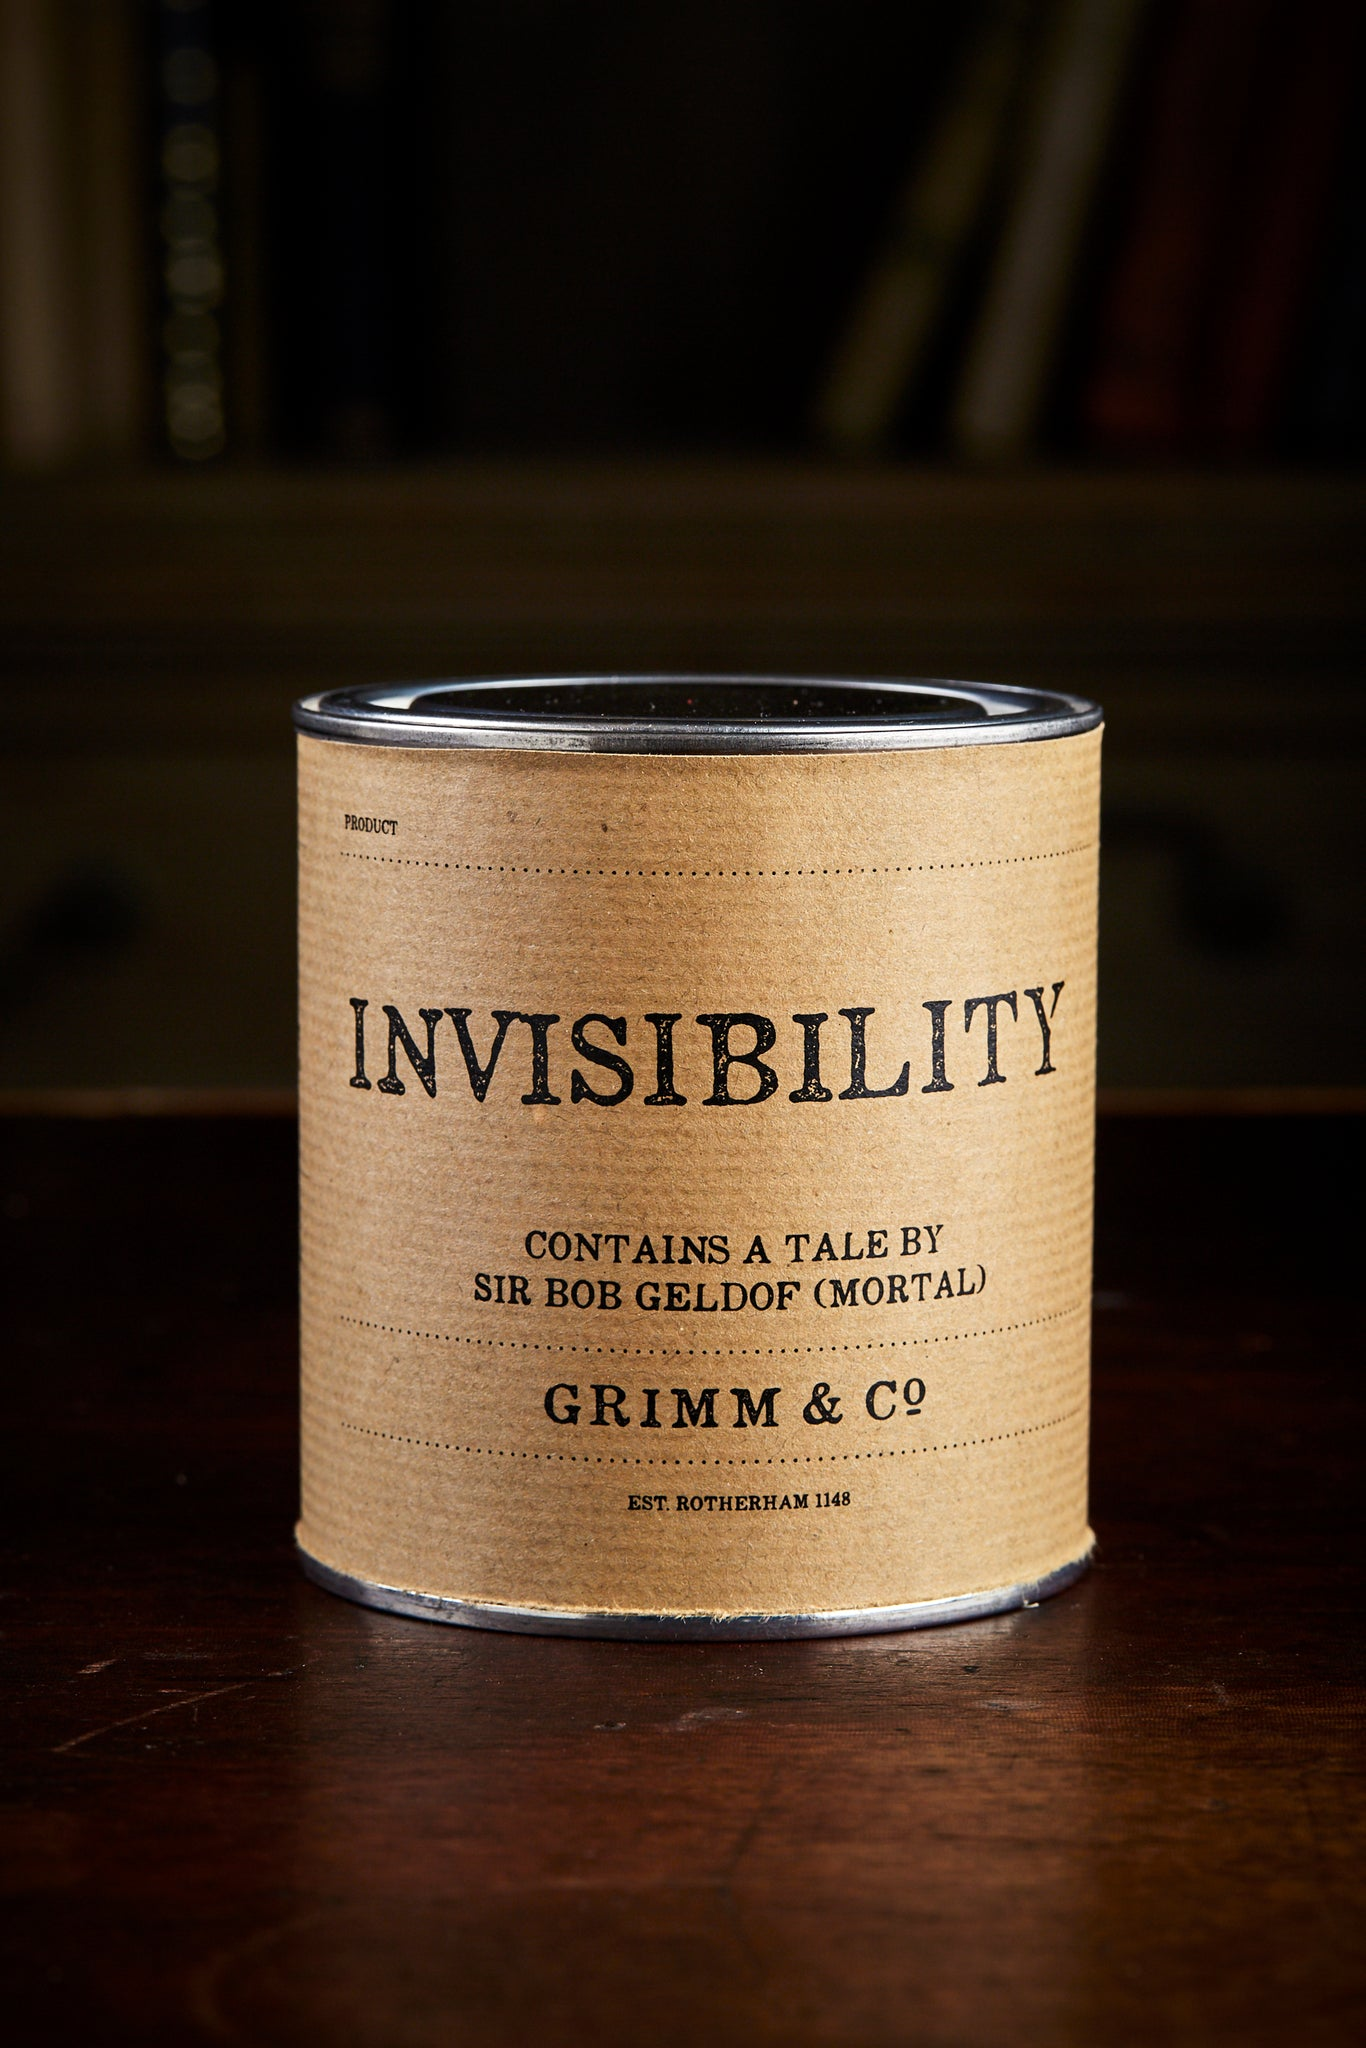 Invisibility – Grimm & Co on